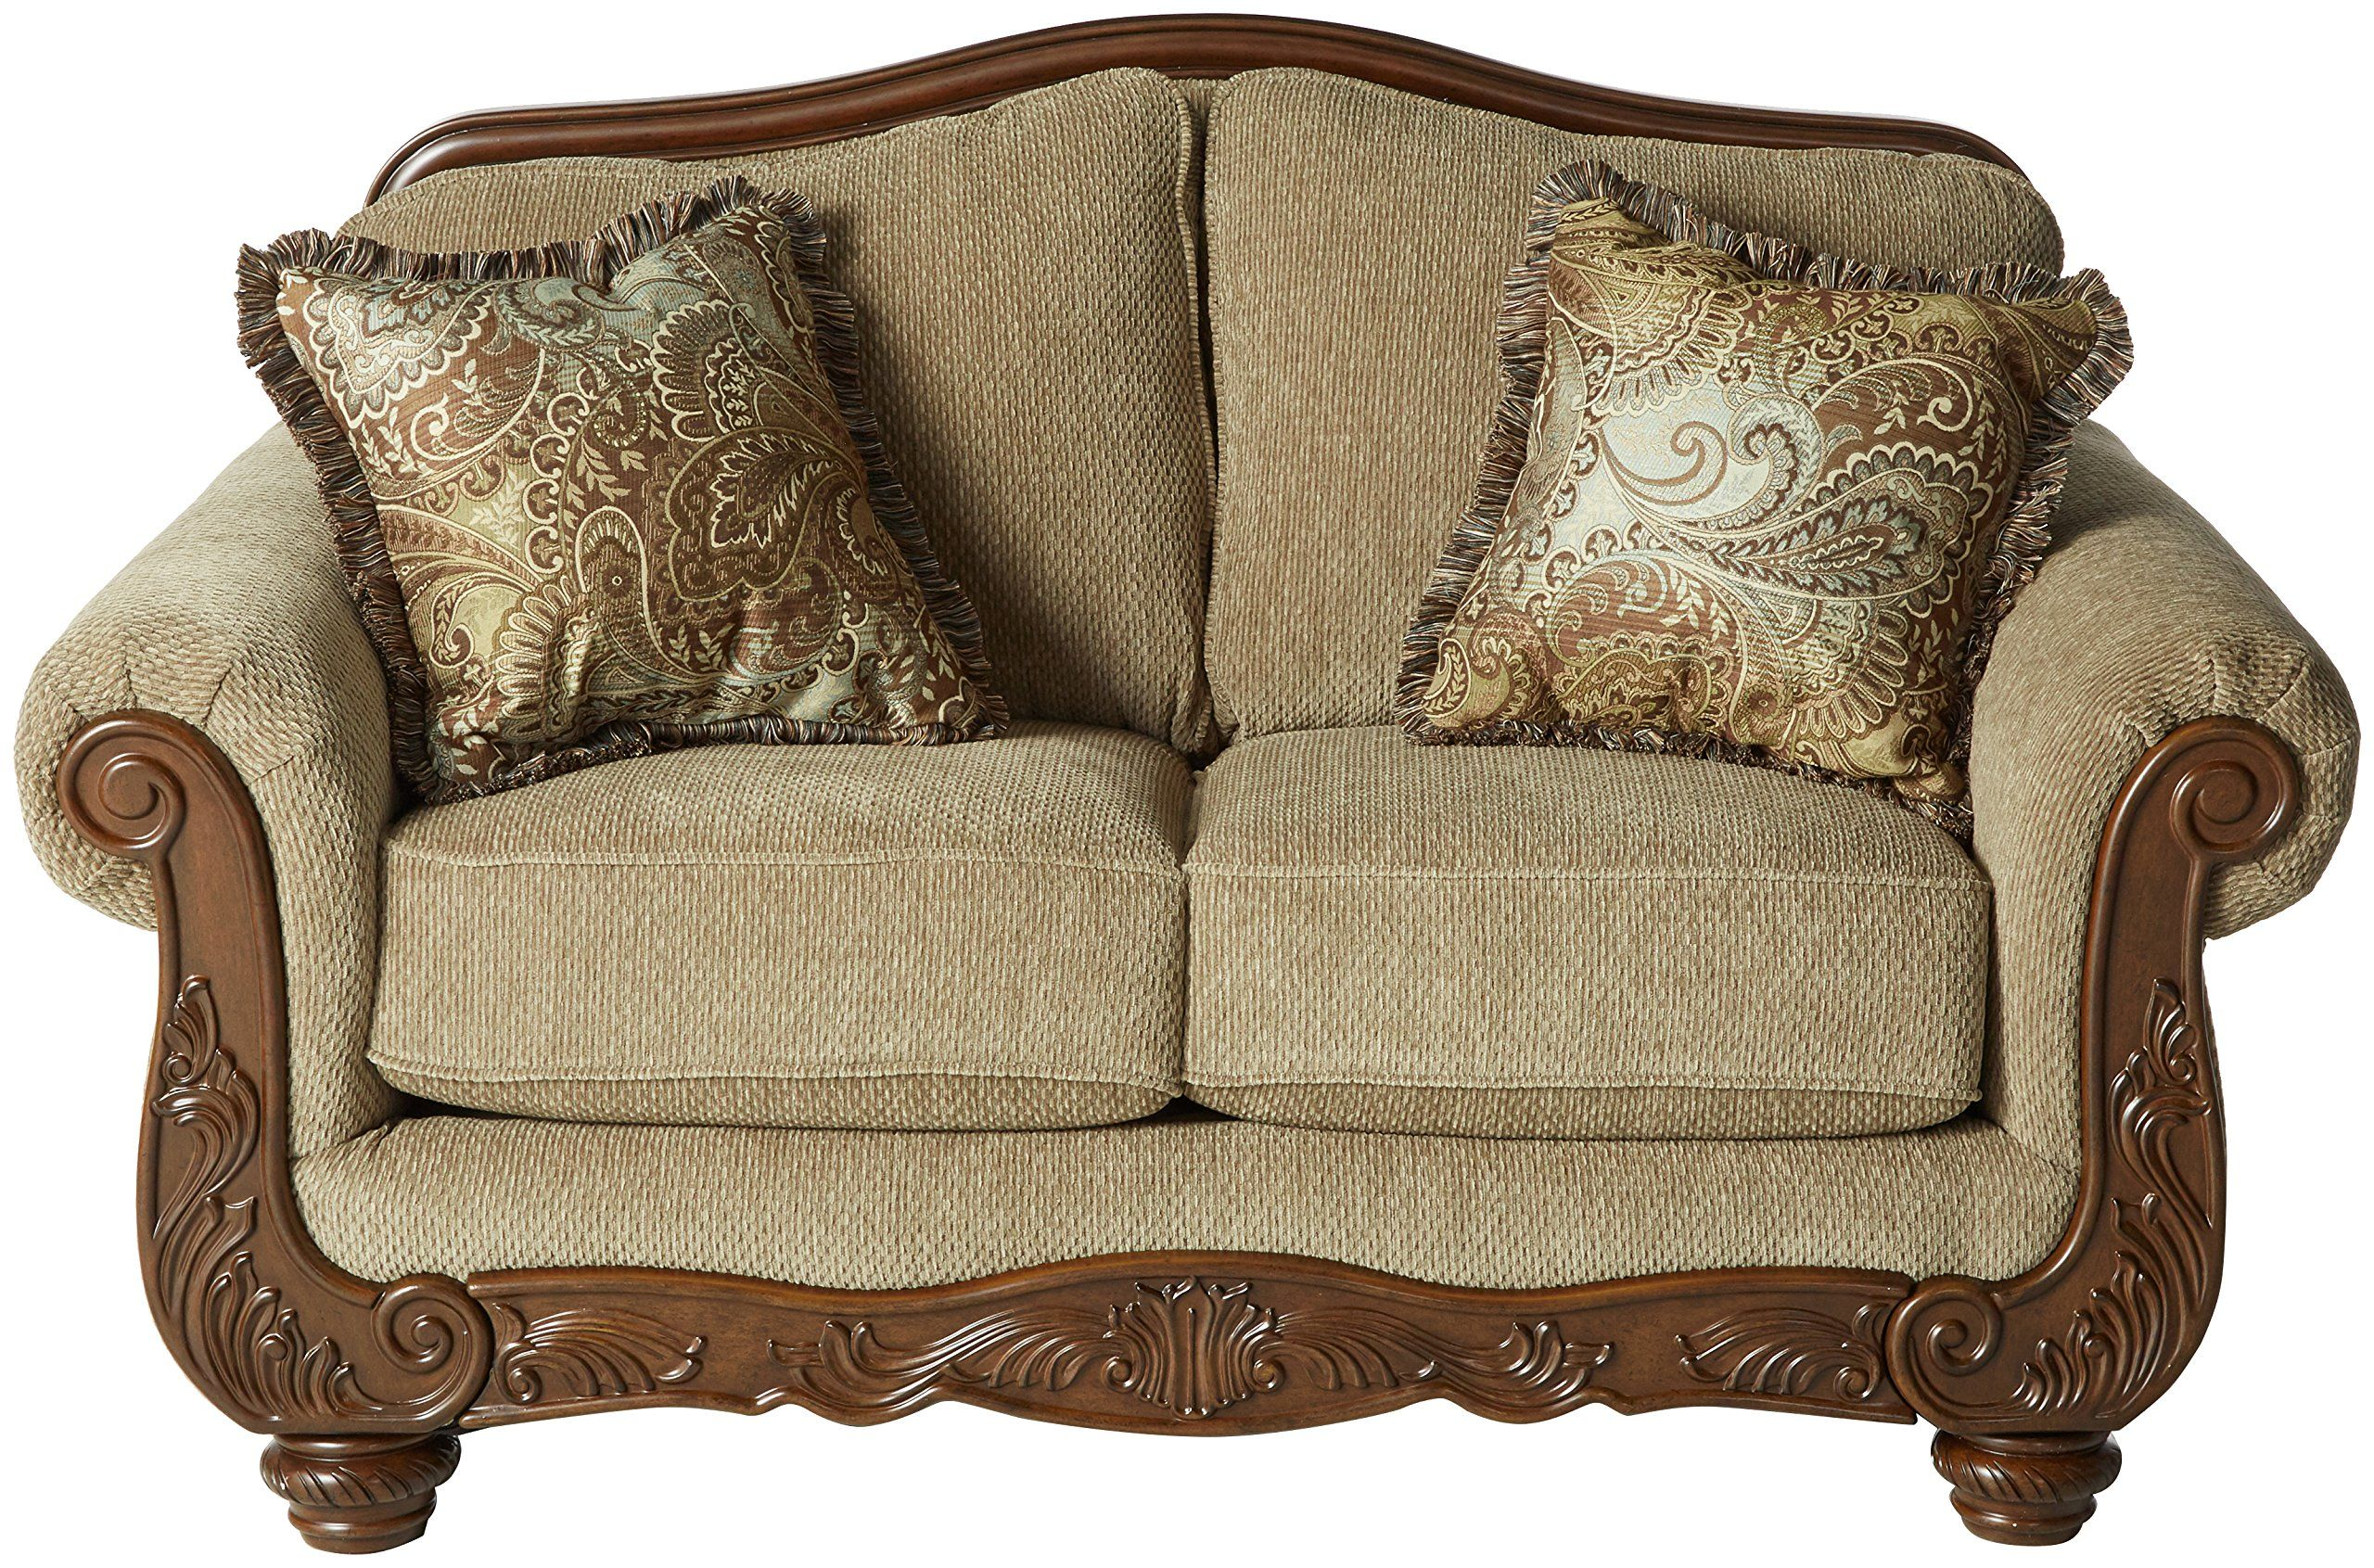 Ashley Furniture Signature Design Martinsburg Loveseat Sofa Traditional Style Couch Meadow With Brown B Love Seat Loveseat Sofa Ashley Furniture Living Room